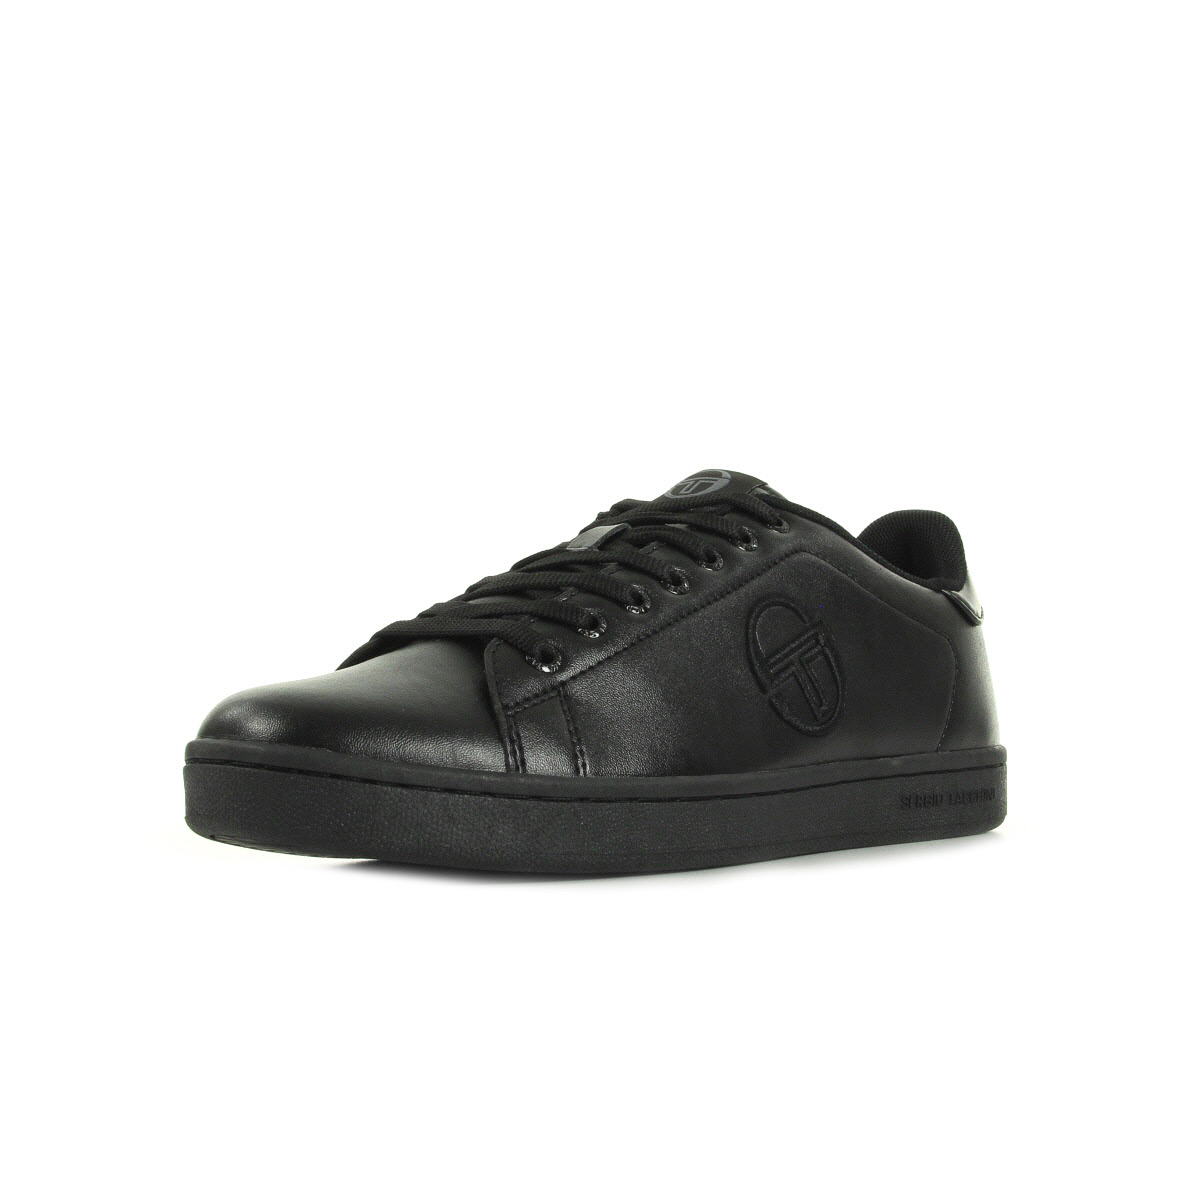 sergio tacchini gran torino black st62410120 chaussures homme homme. Black Bedroom Furniture Sets. Home Design Ideas